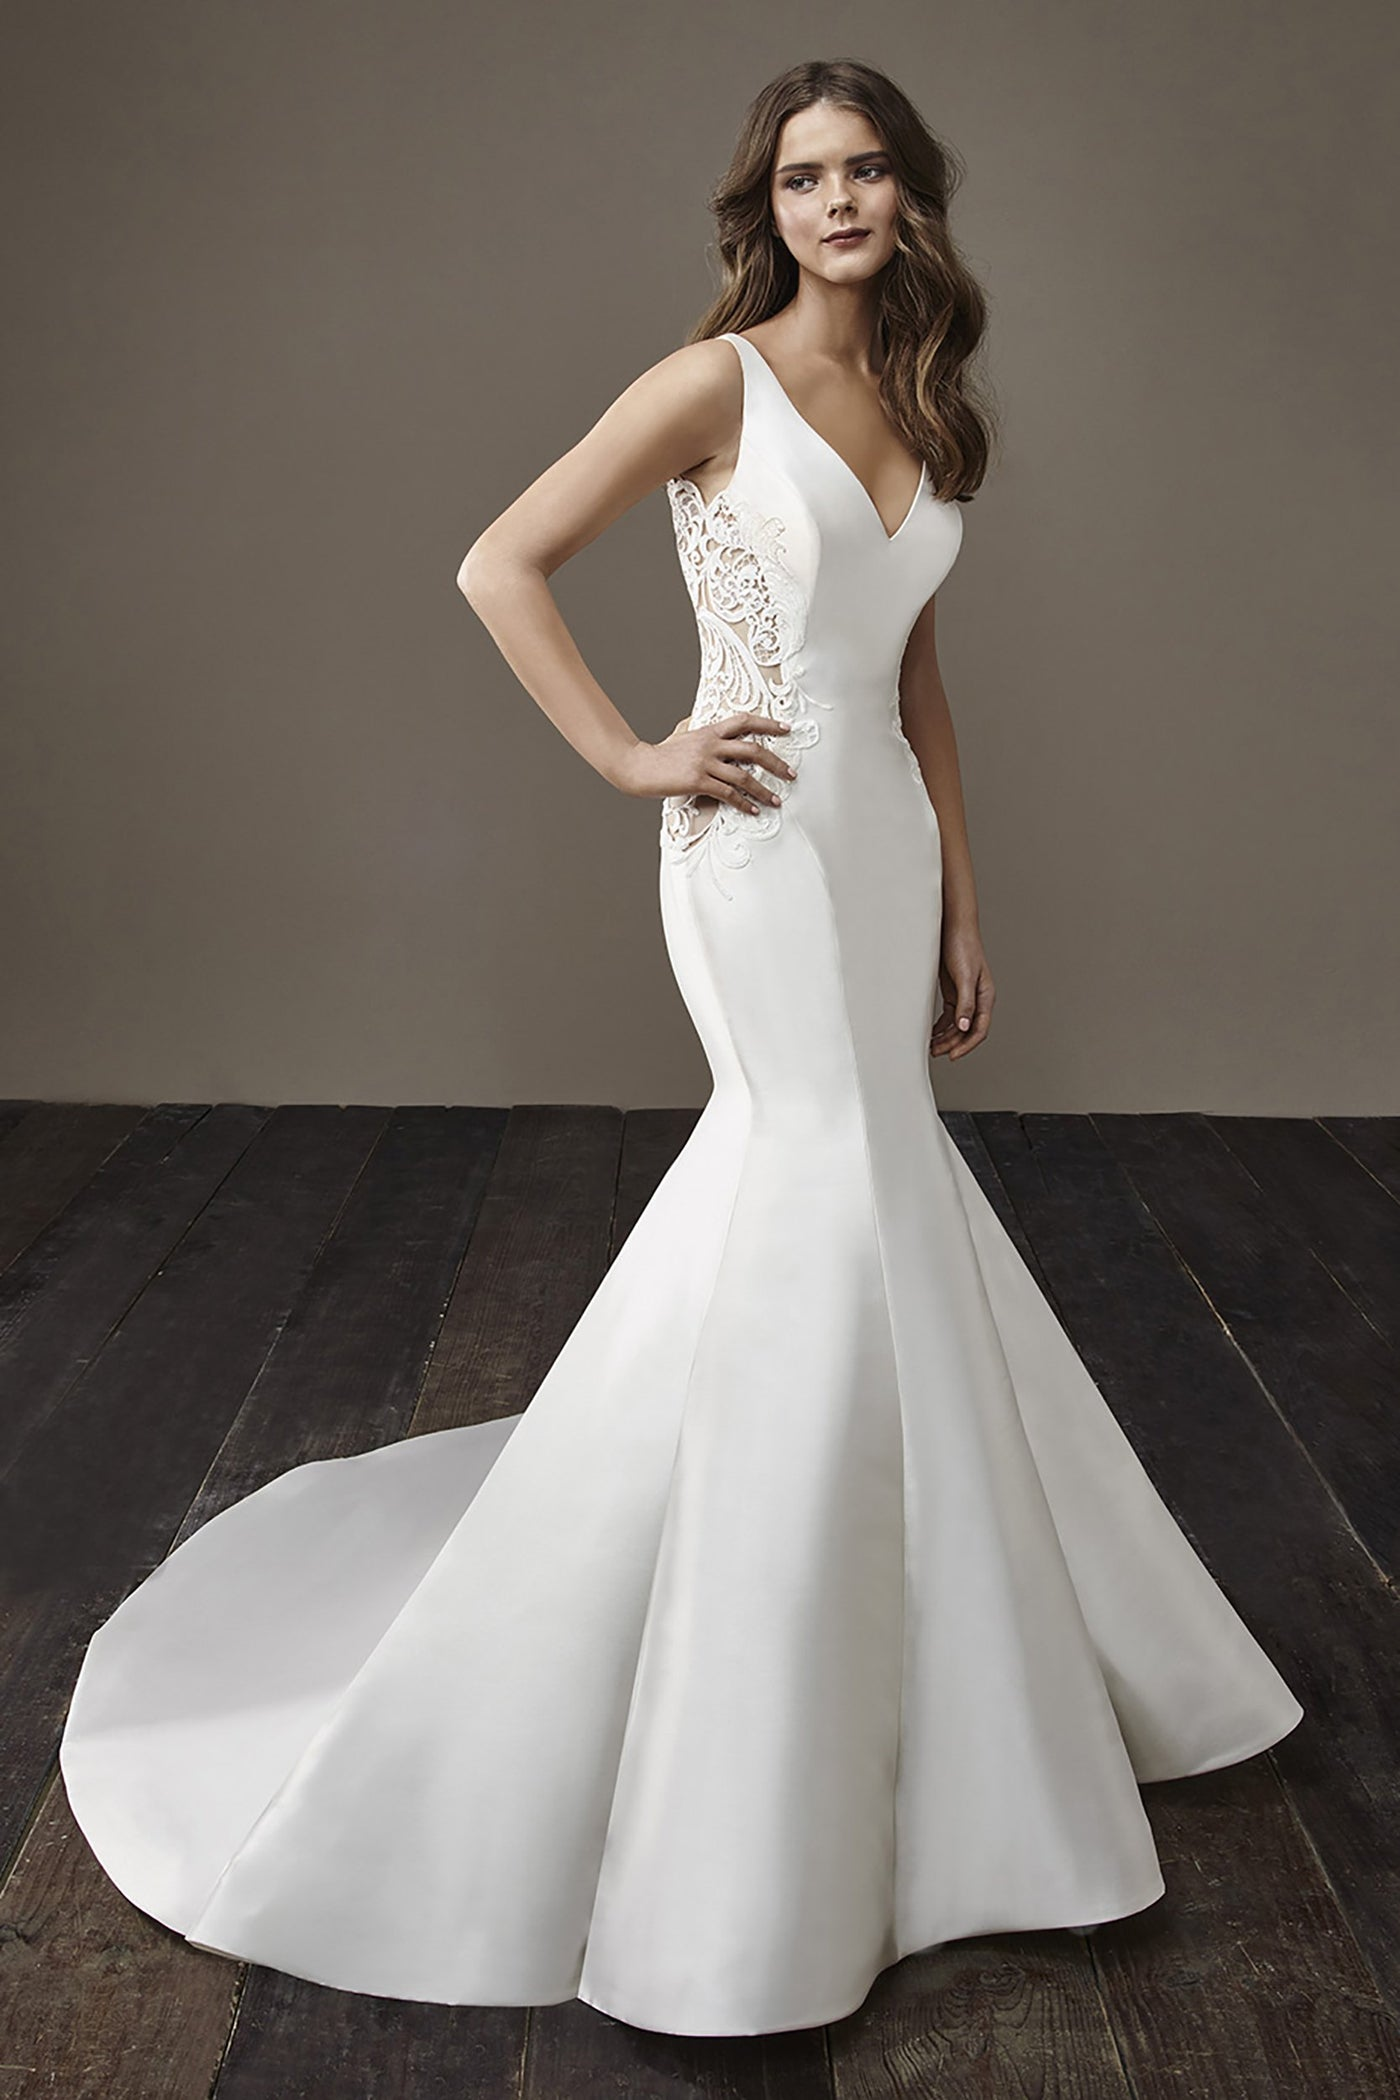 Beth - Sample Gown, Online Sample Sale, Badgley Mischka - Sample Gown - Eternal Bridal